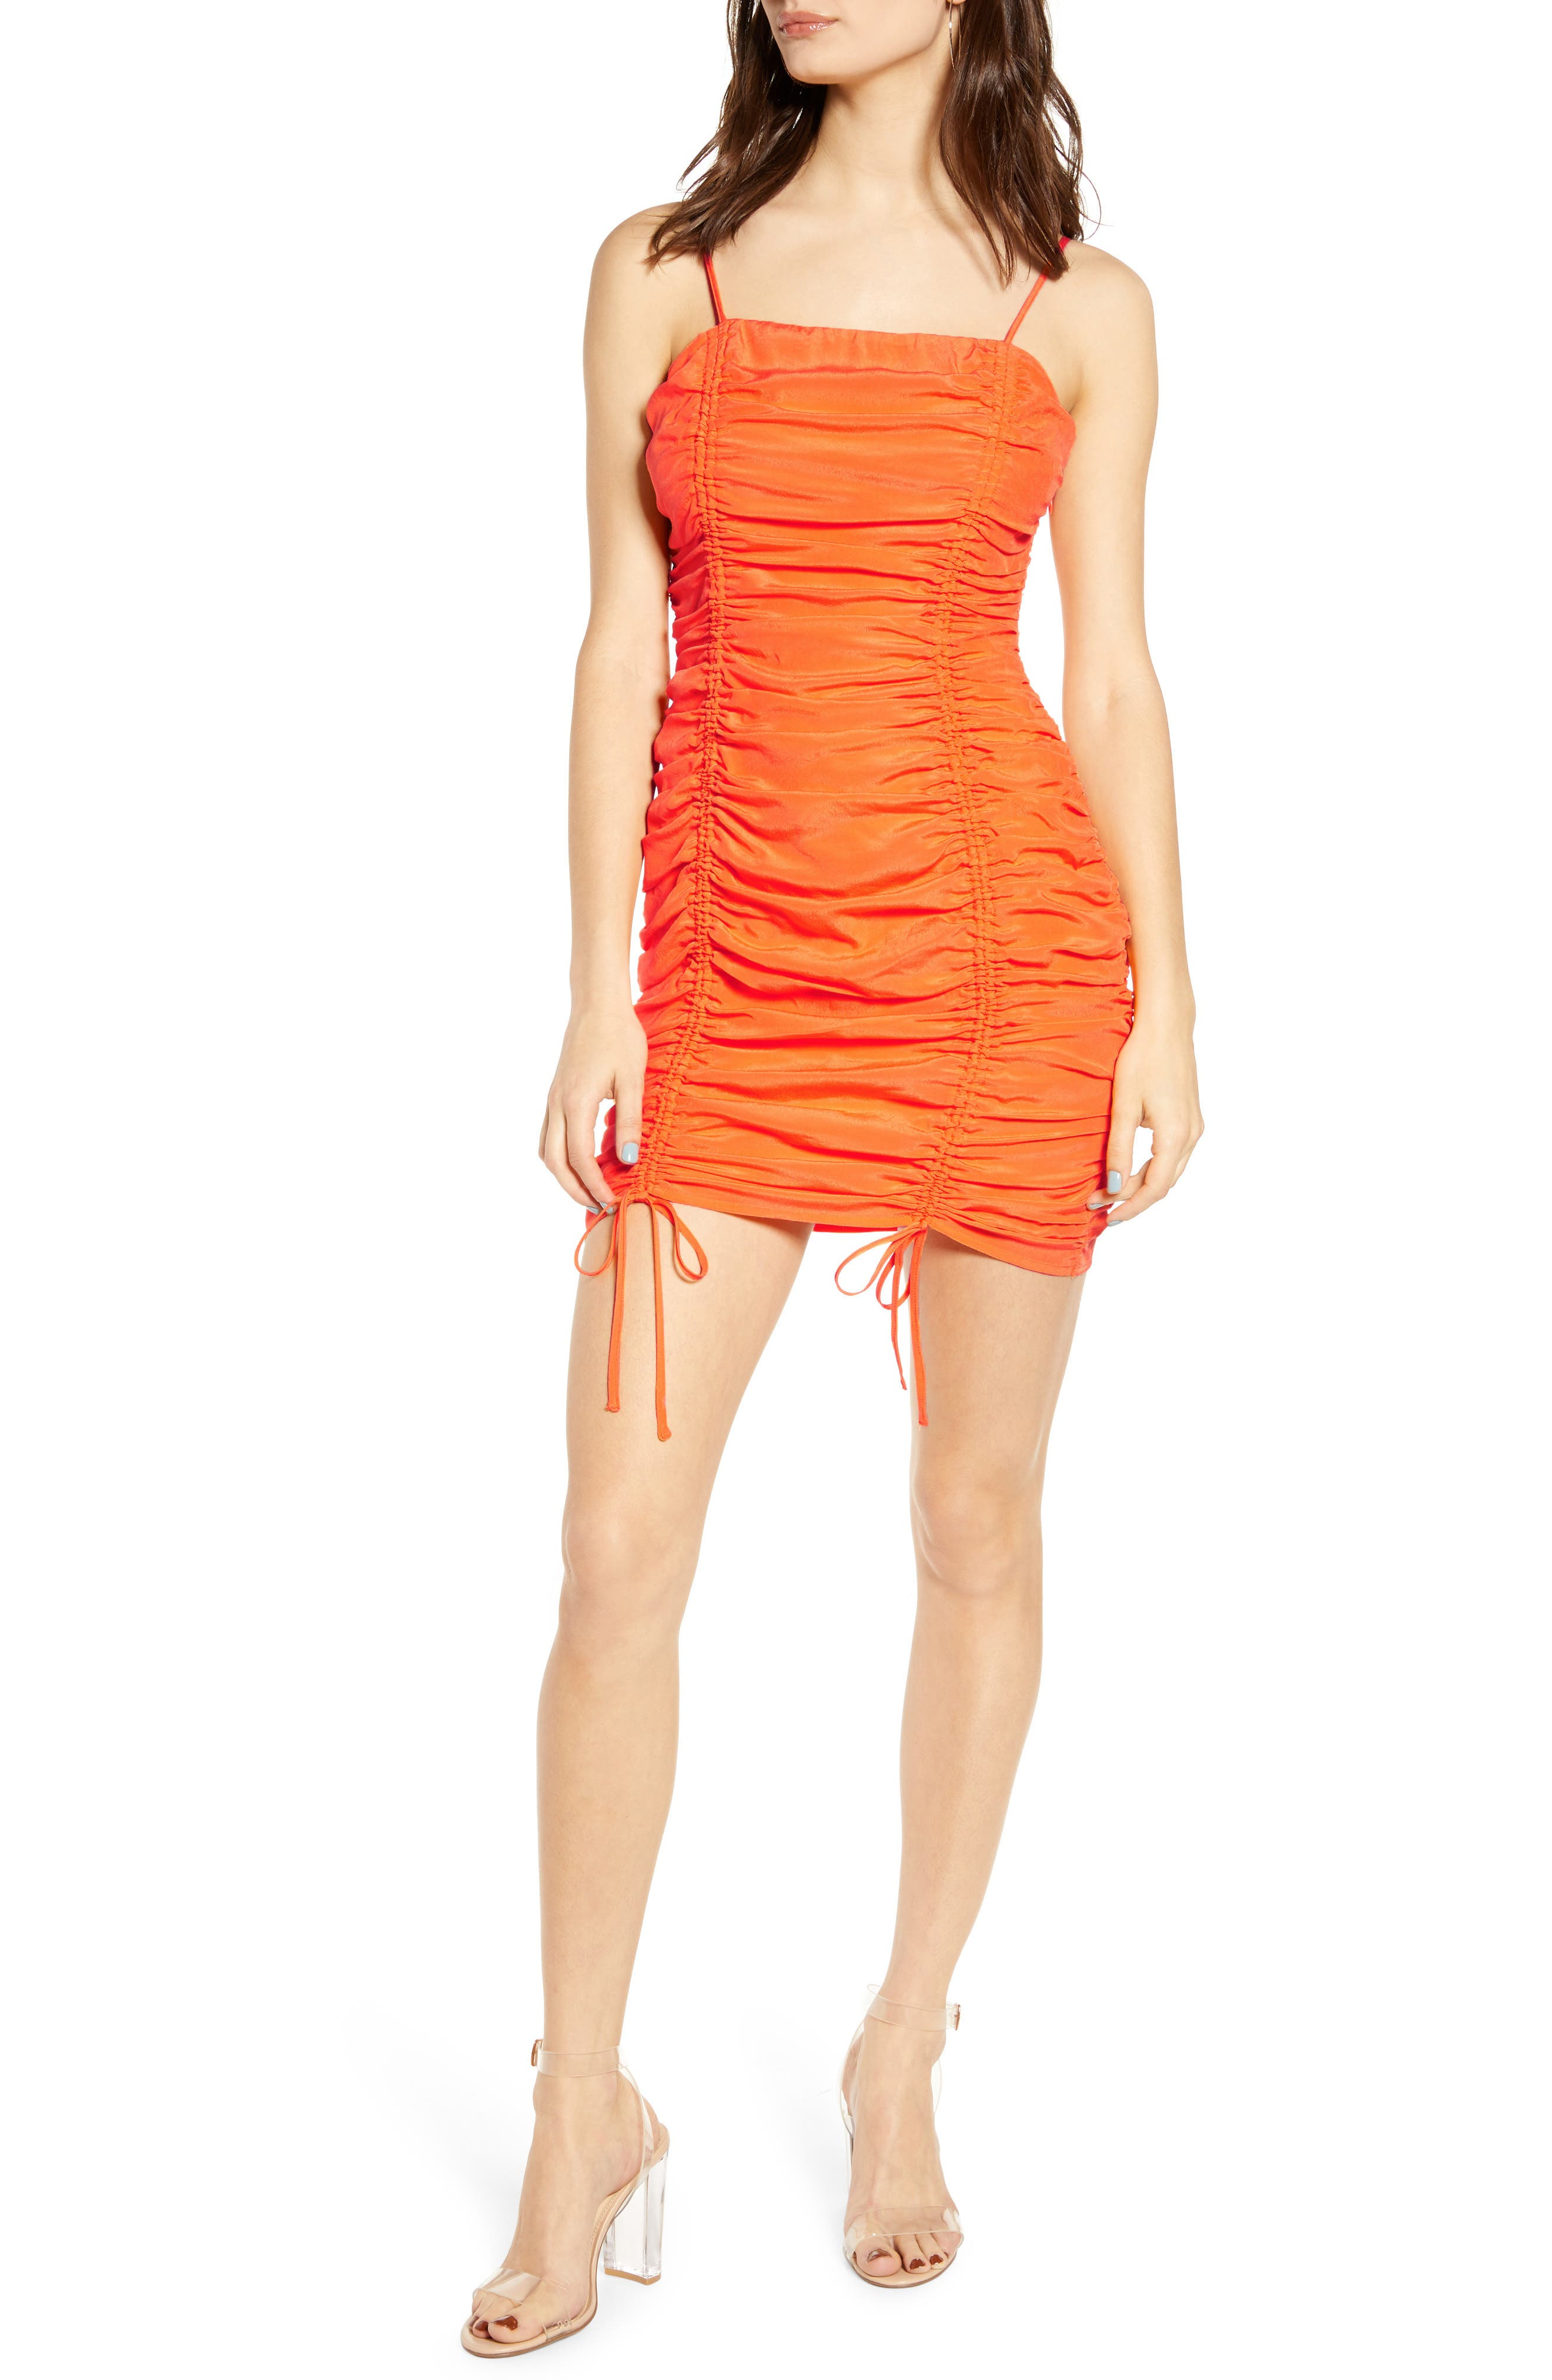 J.o.a. Sleeveless Ruched Minidress, Orange